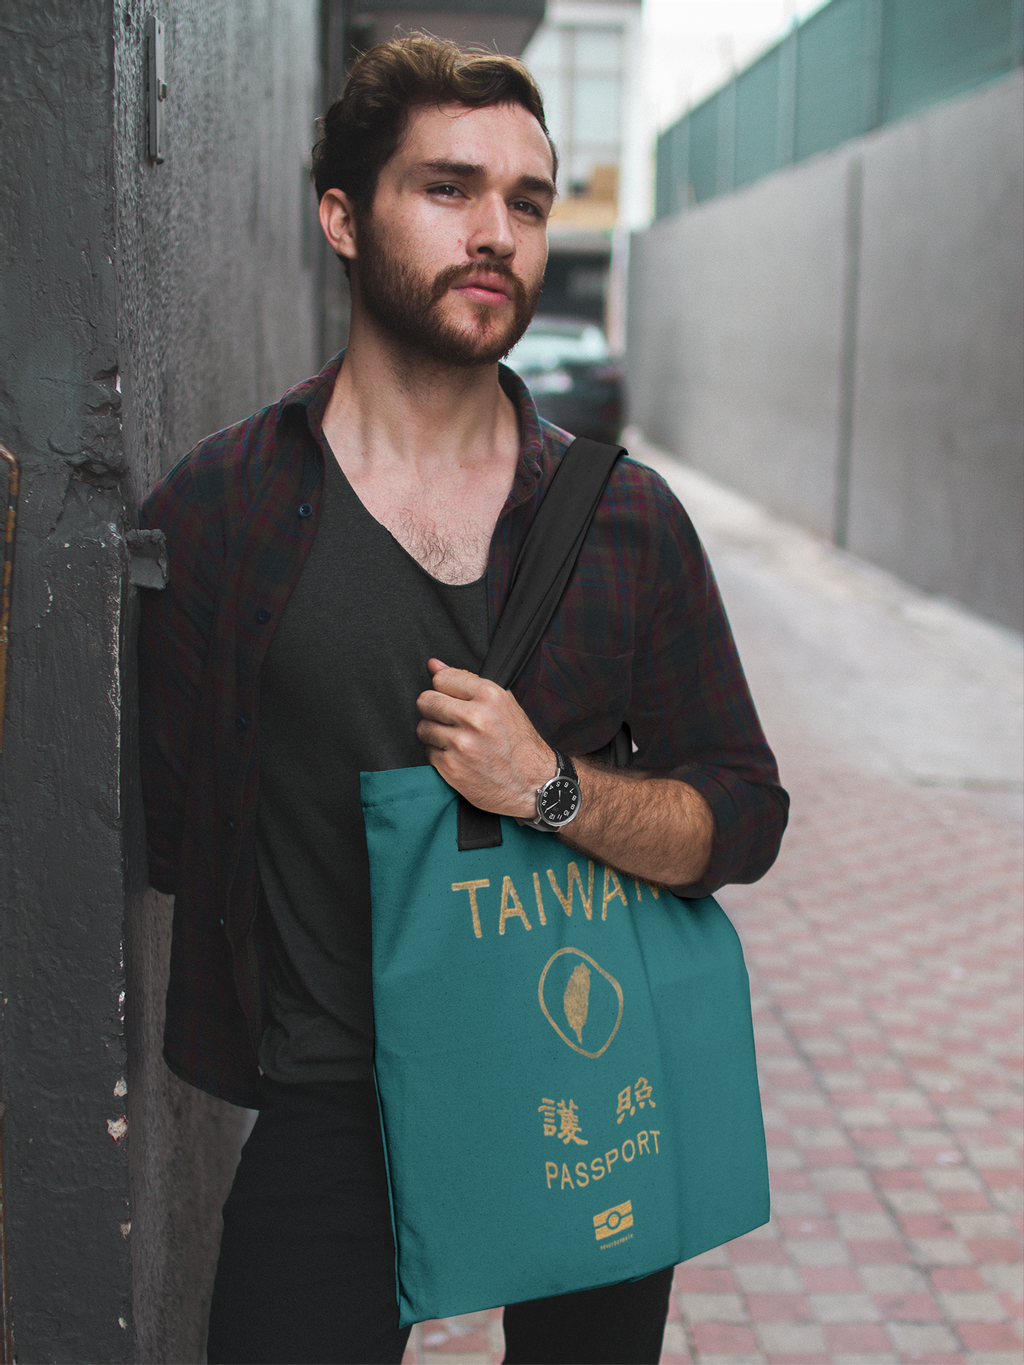 dude-standing-in-an-alley-while-carrying-a-tote-bag-mockup-a17094.png